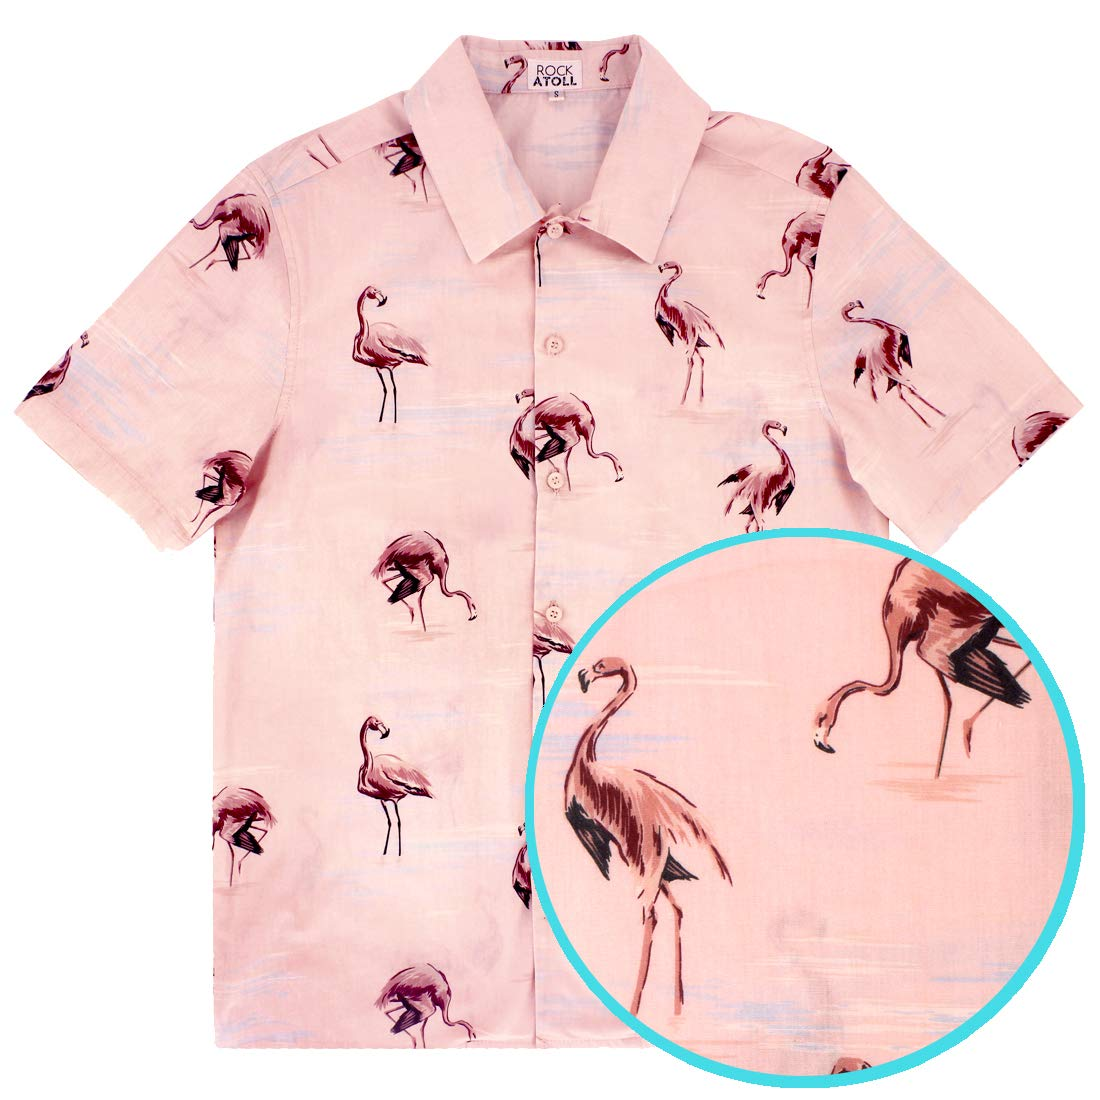 8c546d90 ROCK ATOLL Men's Light Pink Flamingo Print Casual Short Sleeve Button-Down  Shirt at Amazon Men's Clothing store: